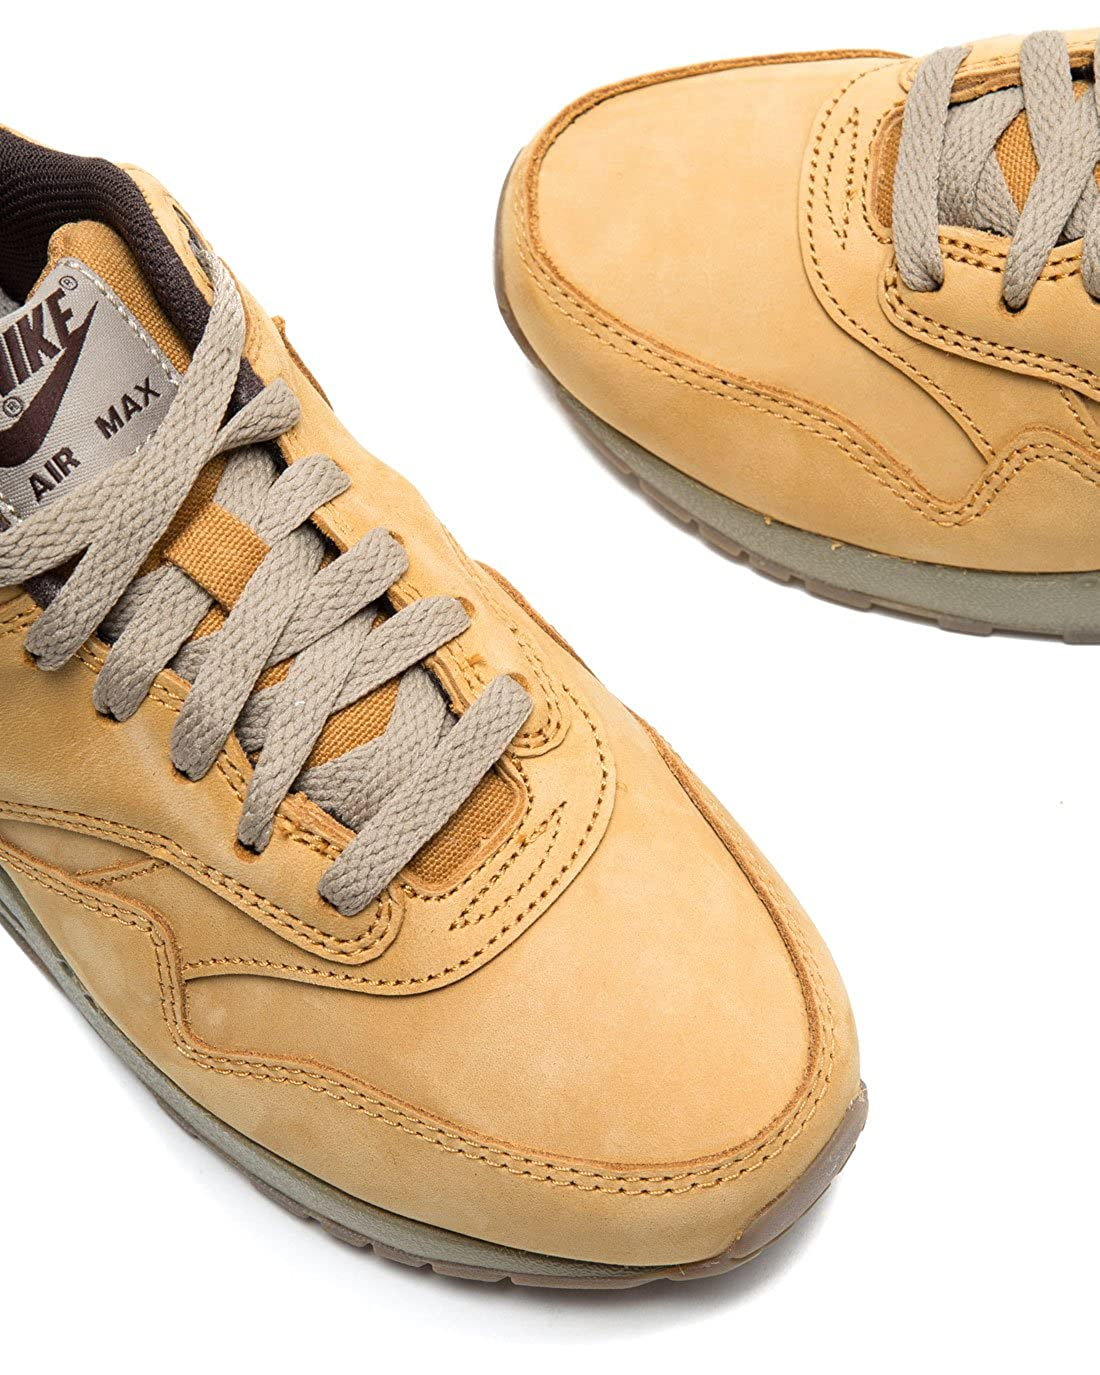 brand new 75115 4fa64 Nike Air Max 1 Leather Premium Junior Trainer  Amazon.co.uk  Shoes   Bags